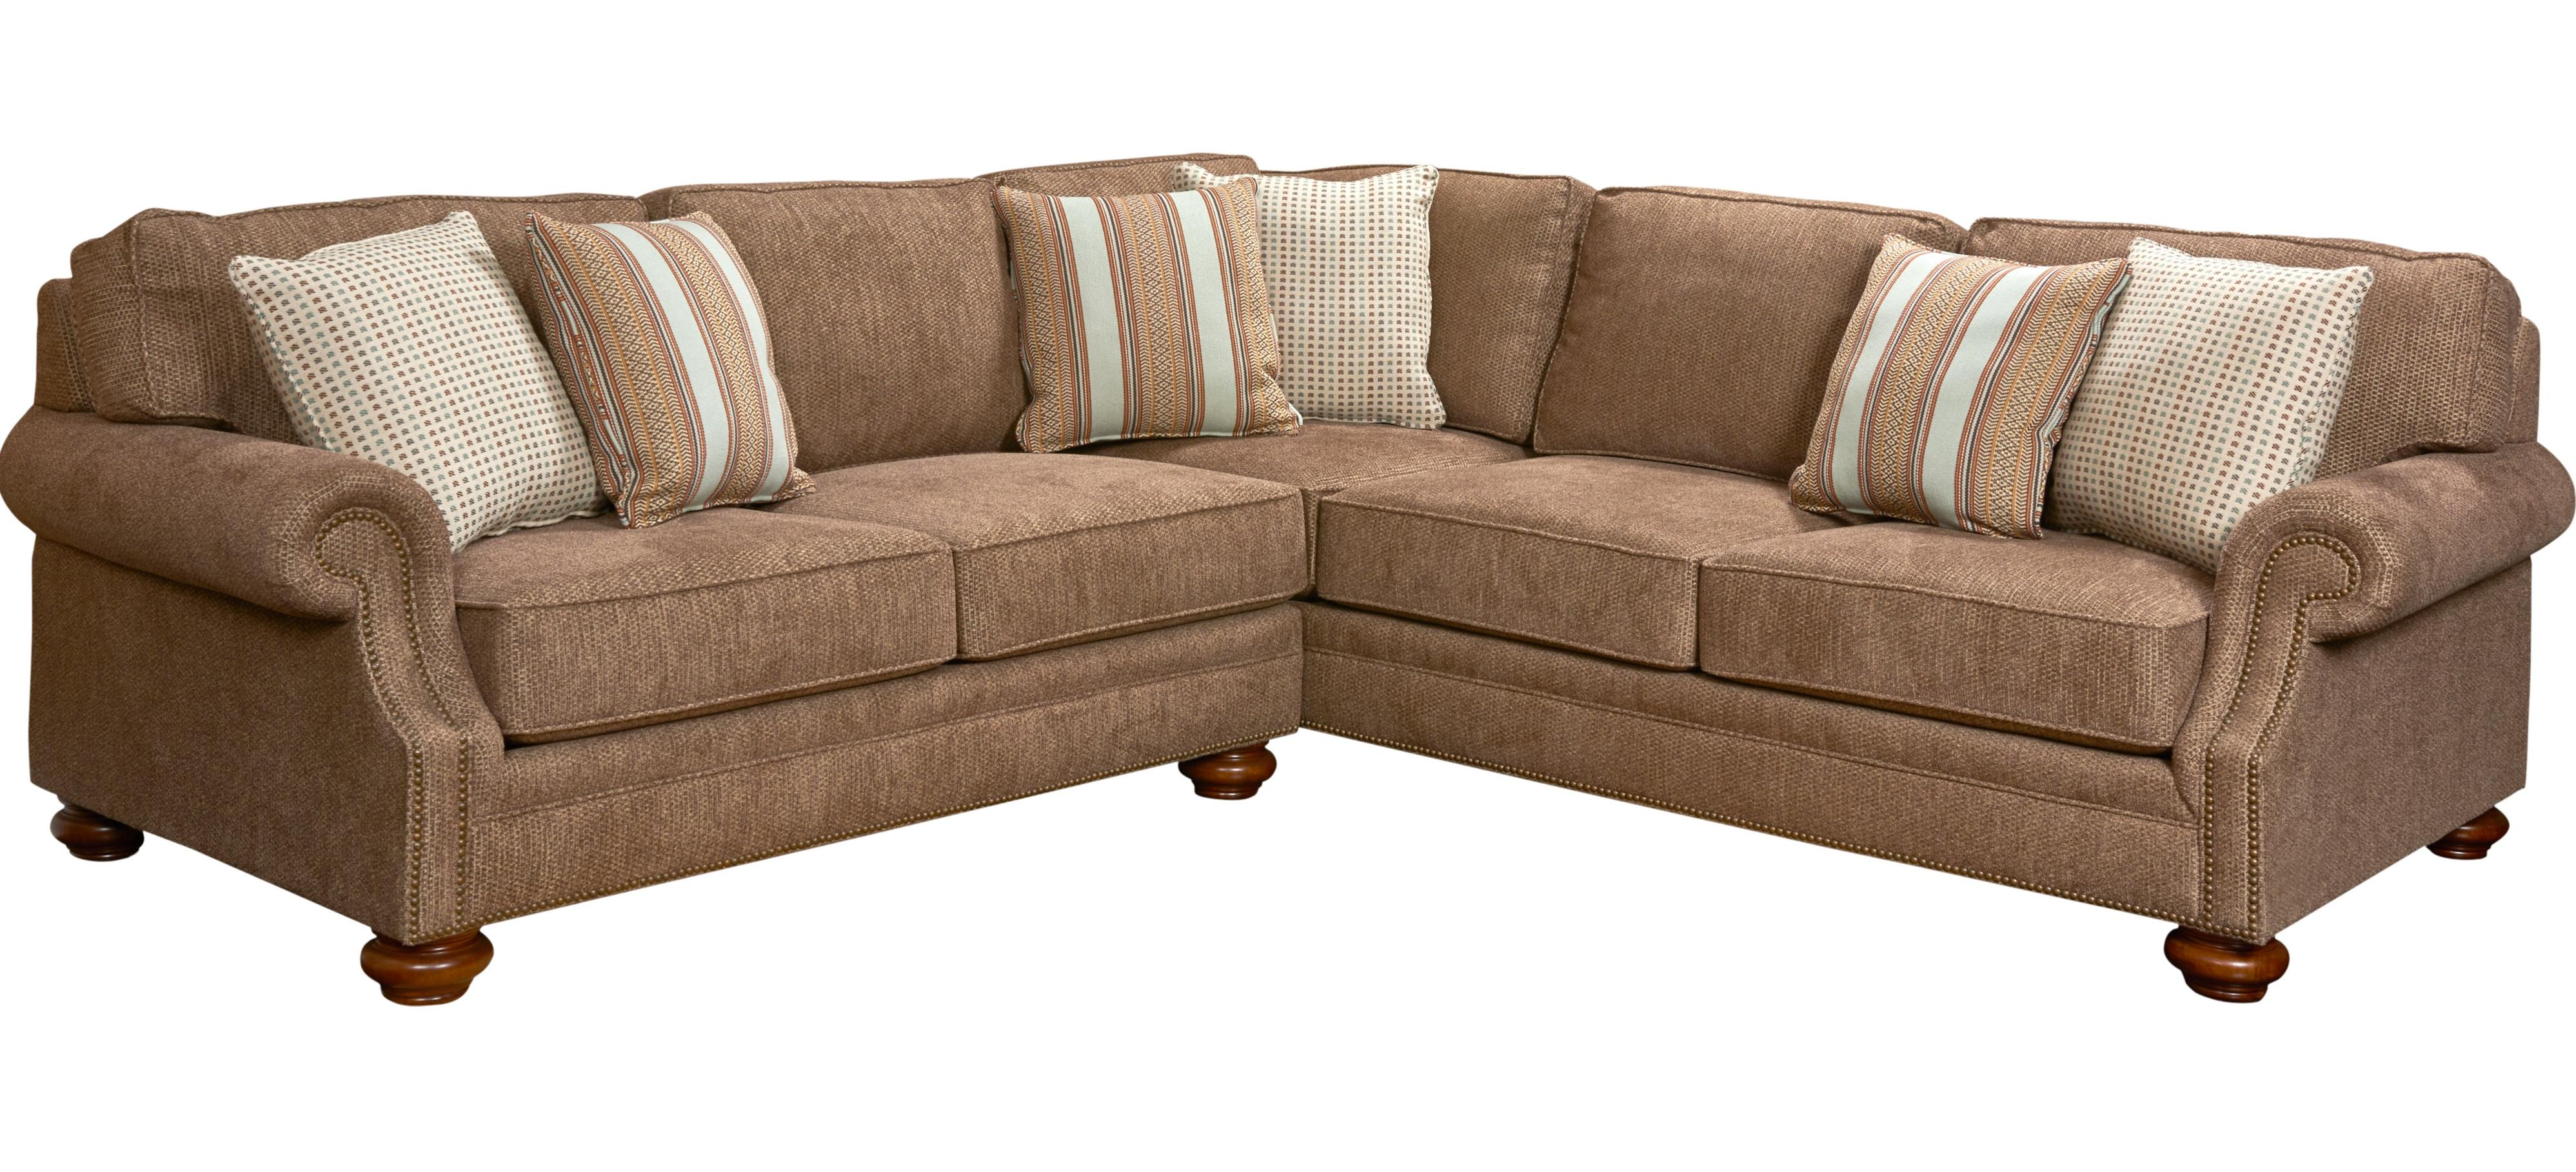 Broyhill Furniture Heuer Sectional Sofa - Item Number: 4261-2+3-4273-86